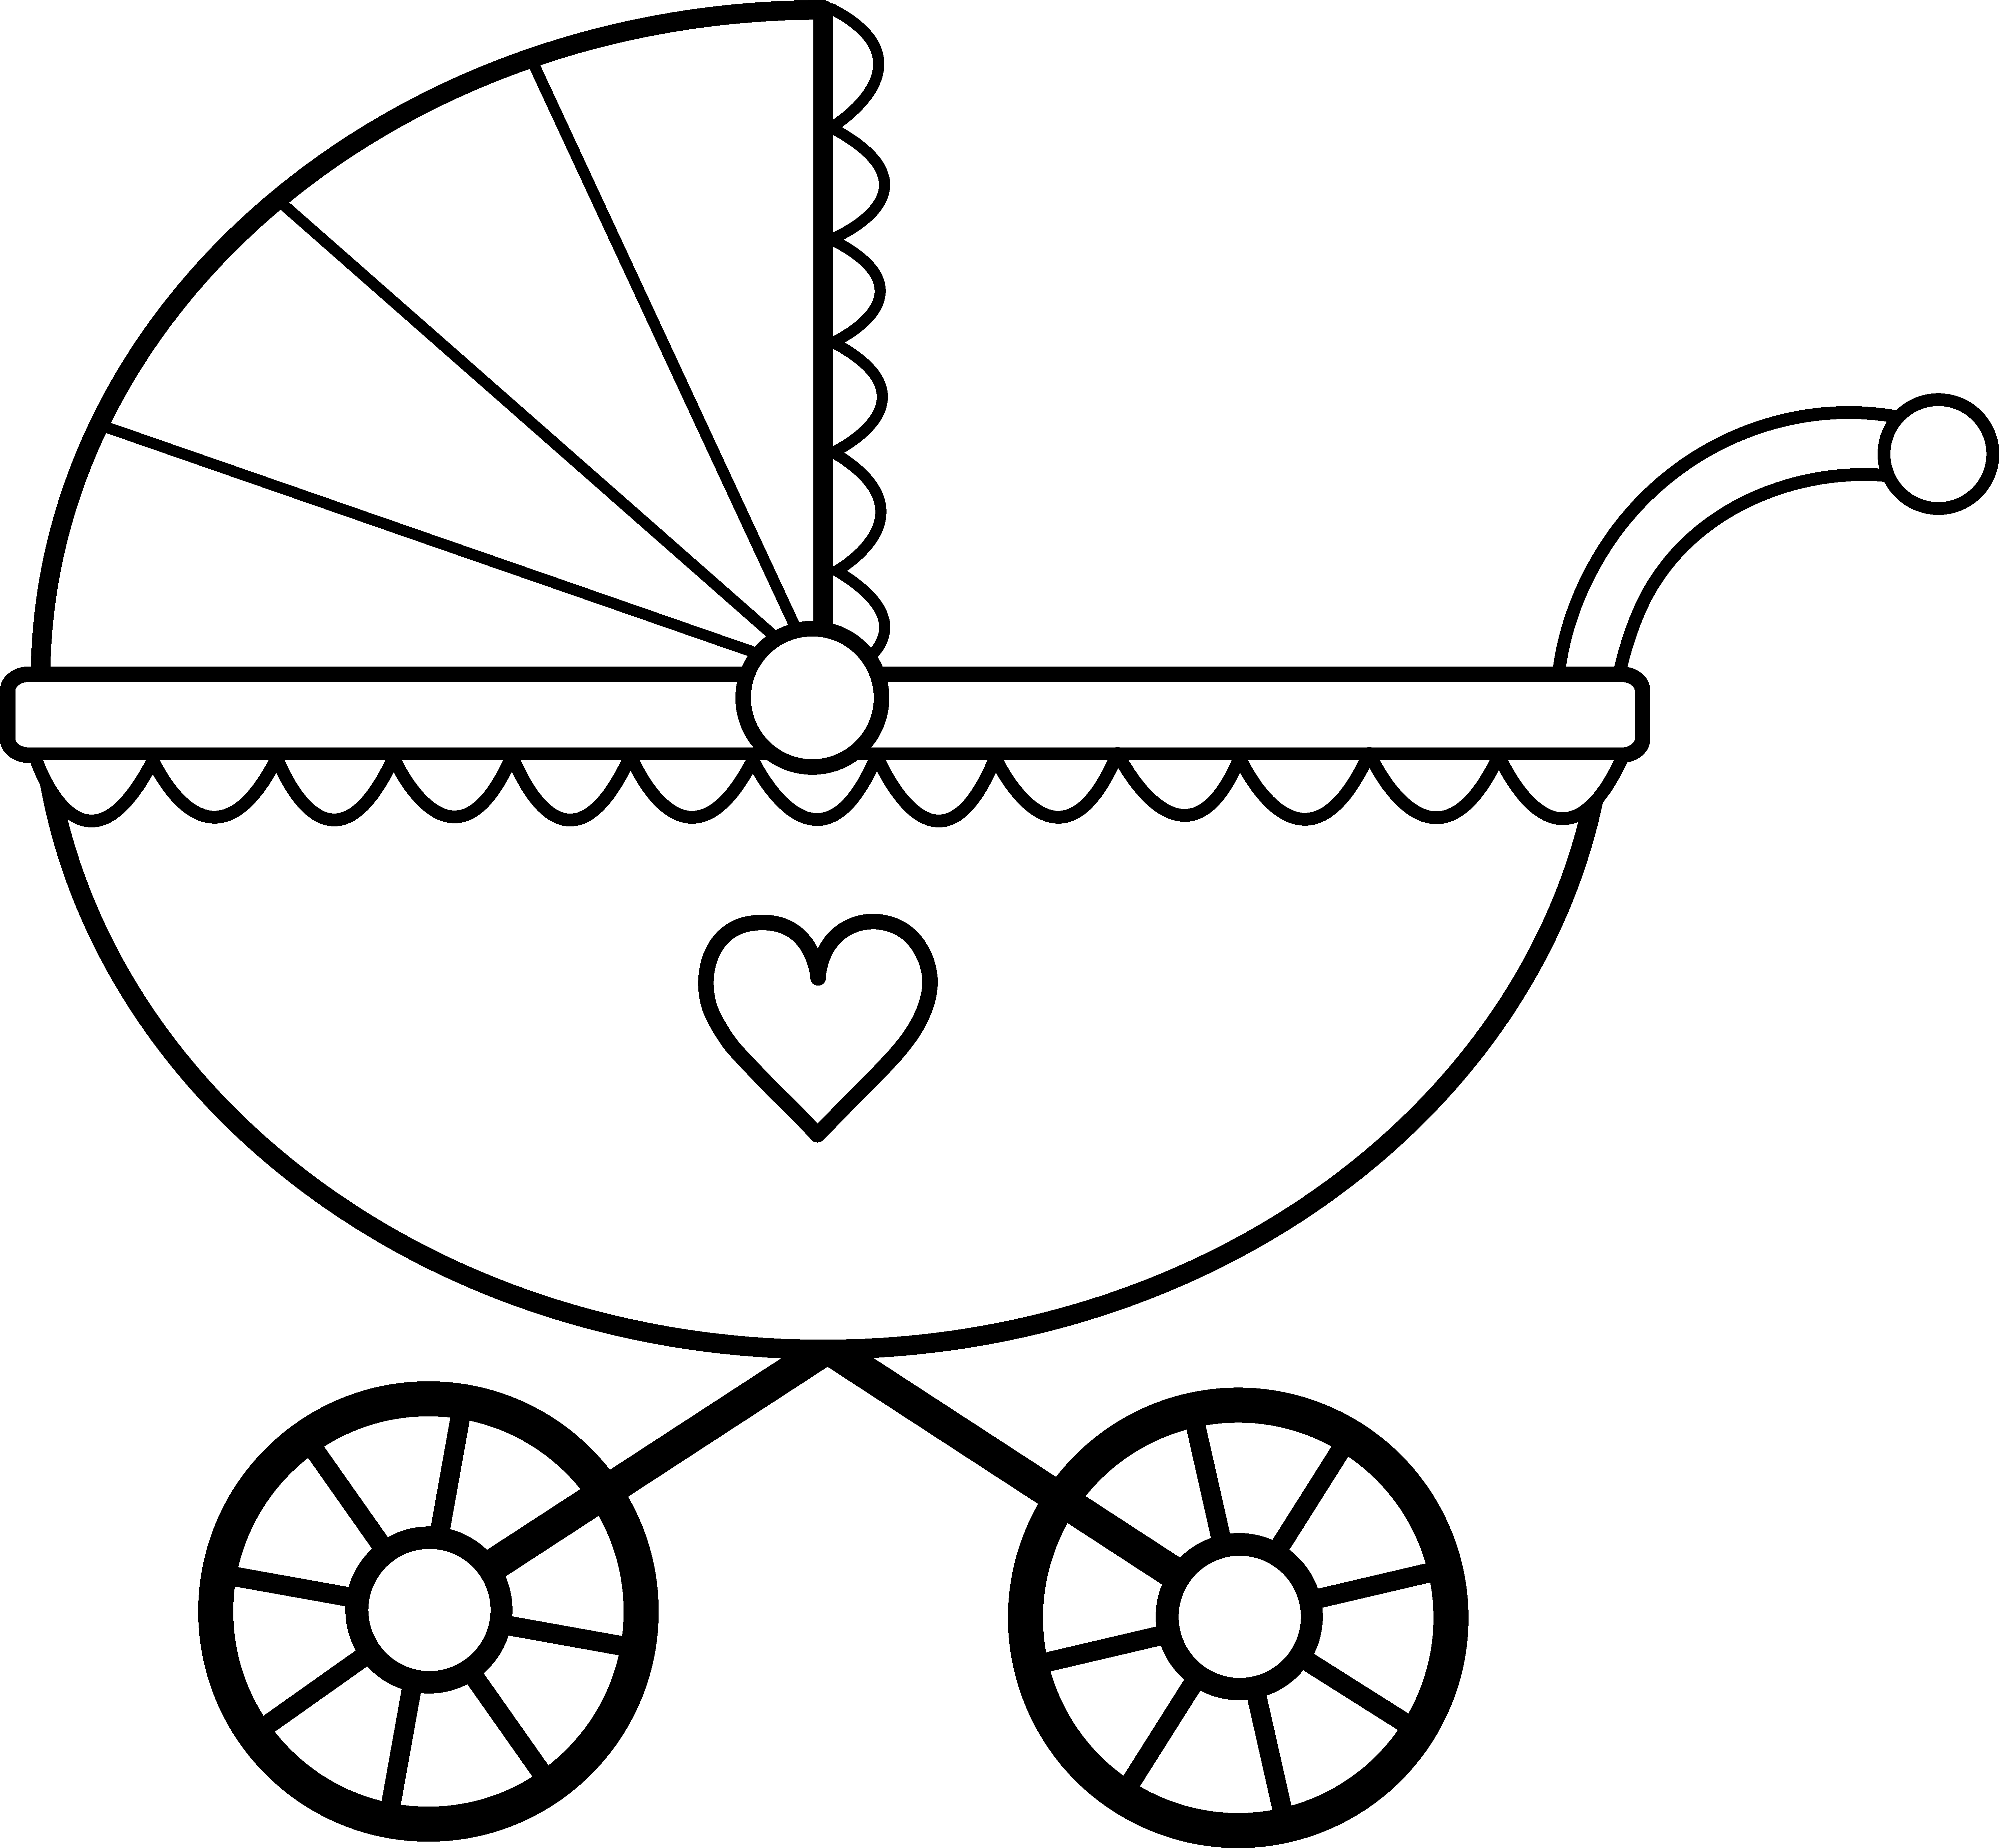 Baby Clipart Black And White #28183-Baby Clipart Black and White #28183-1